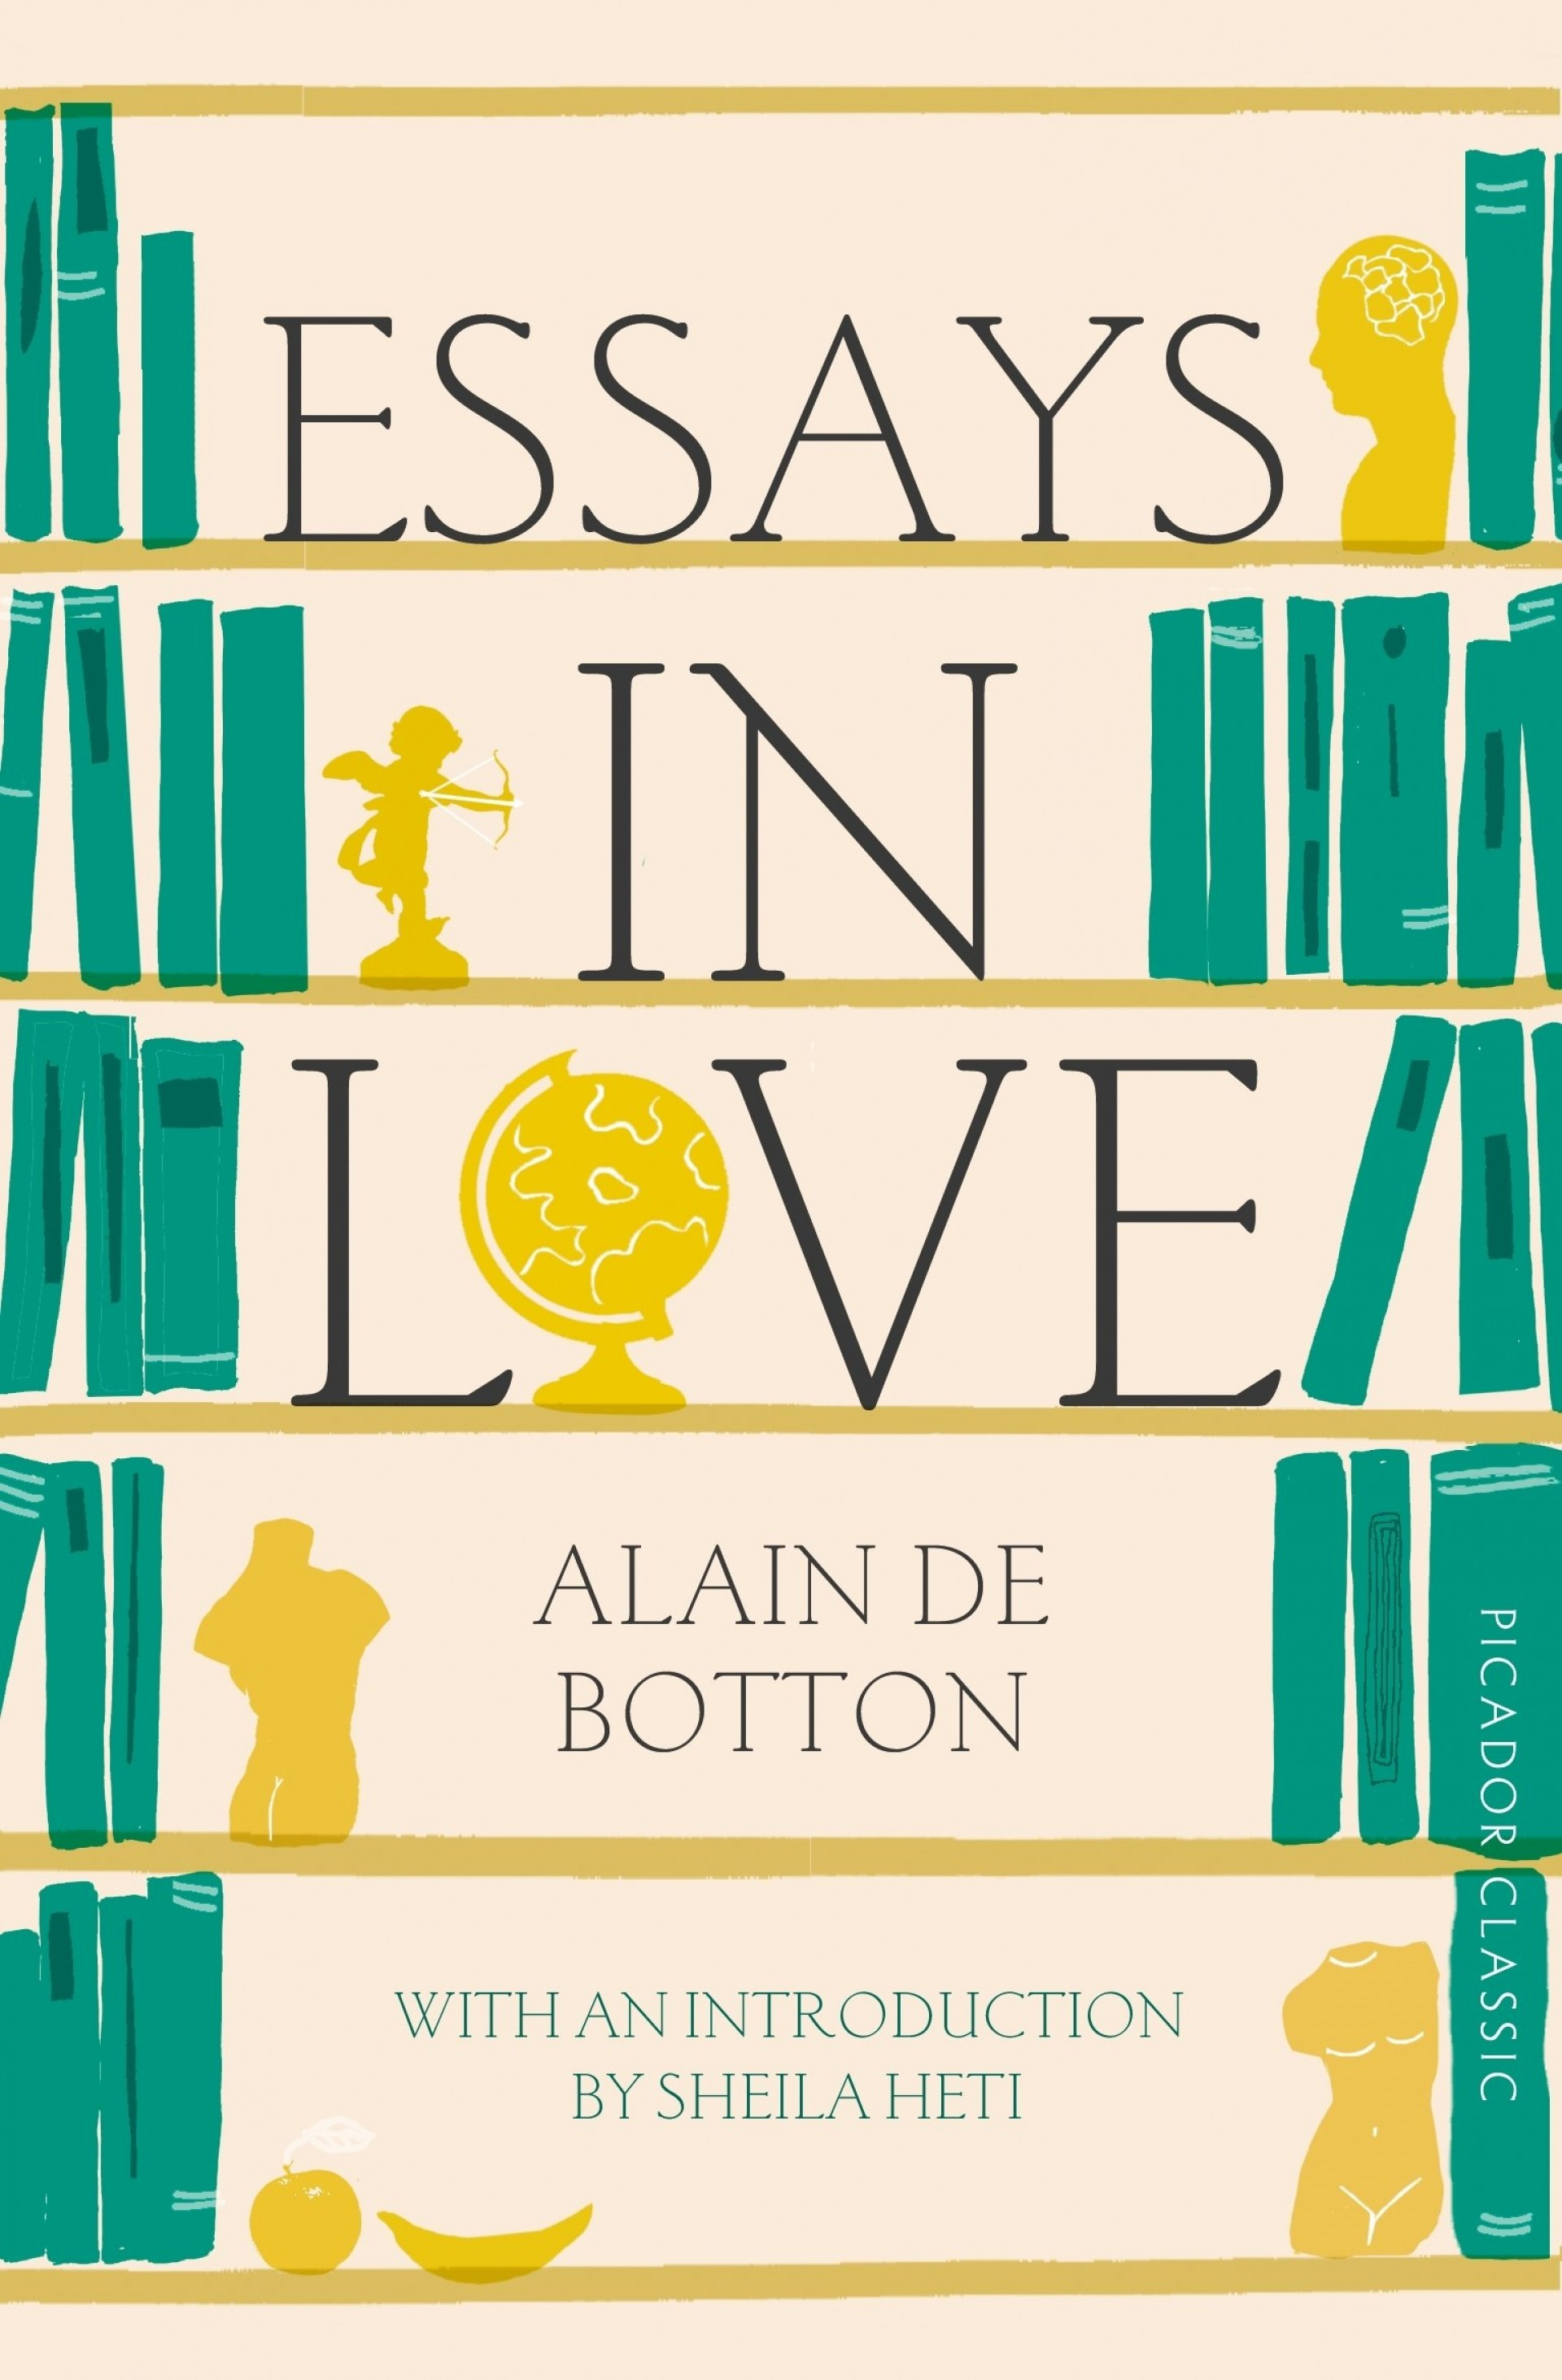 008 Essays On Love Essay Example Awesome Alain De Botton Quotes Review 1920